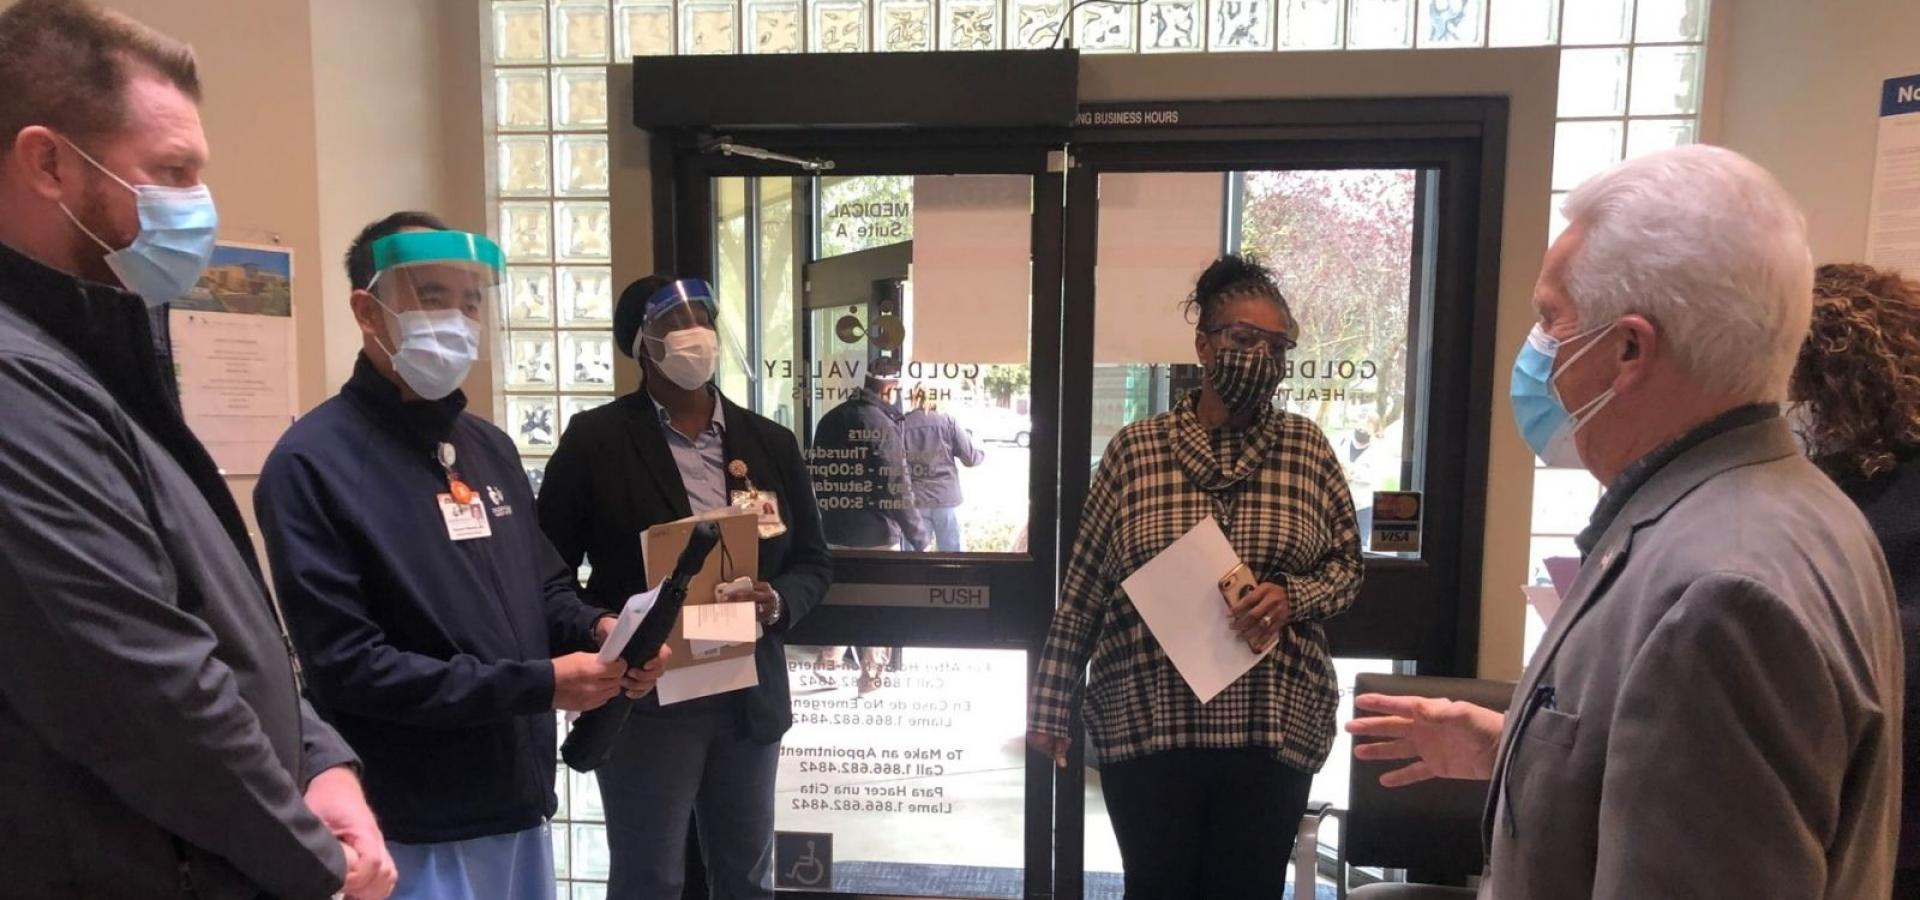 Protecting Valley Healthcare workers